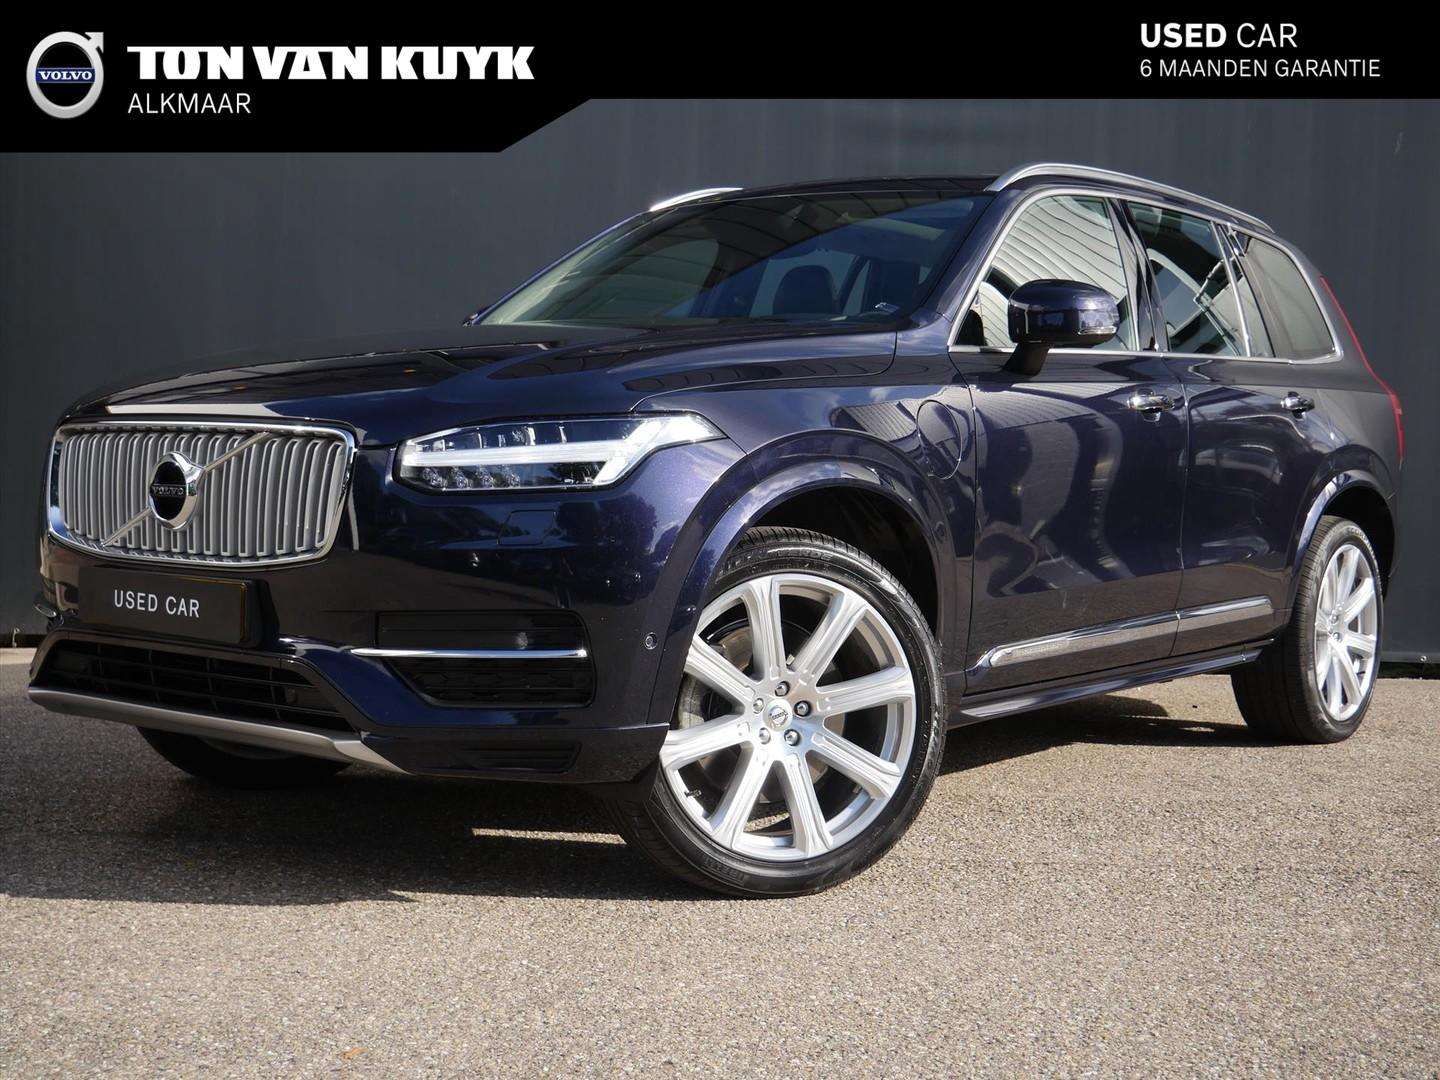 Volvo Xc90 T8 twin engine 7p awd inscription / b&w / luchtvering / luxury /